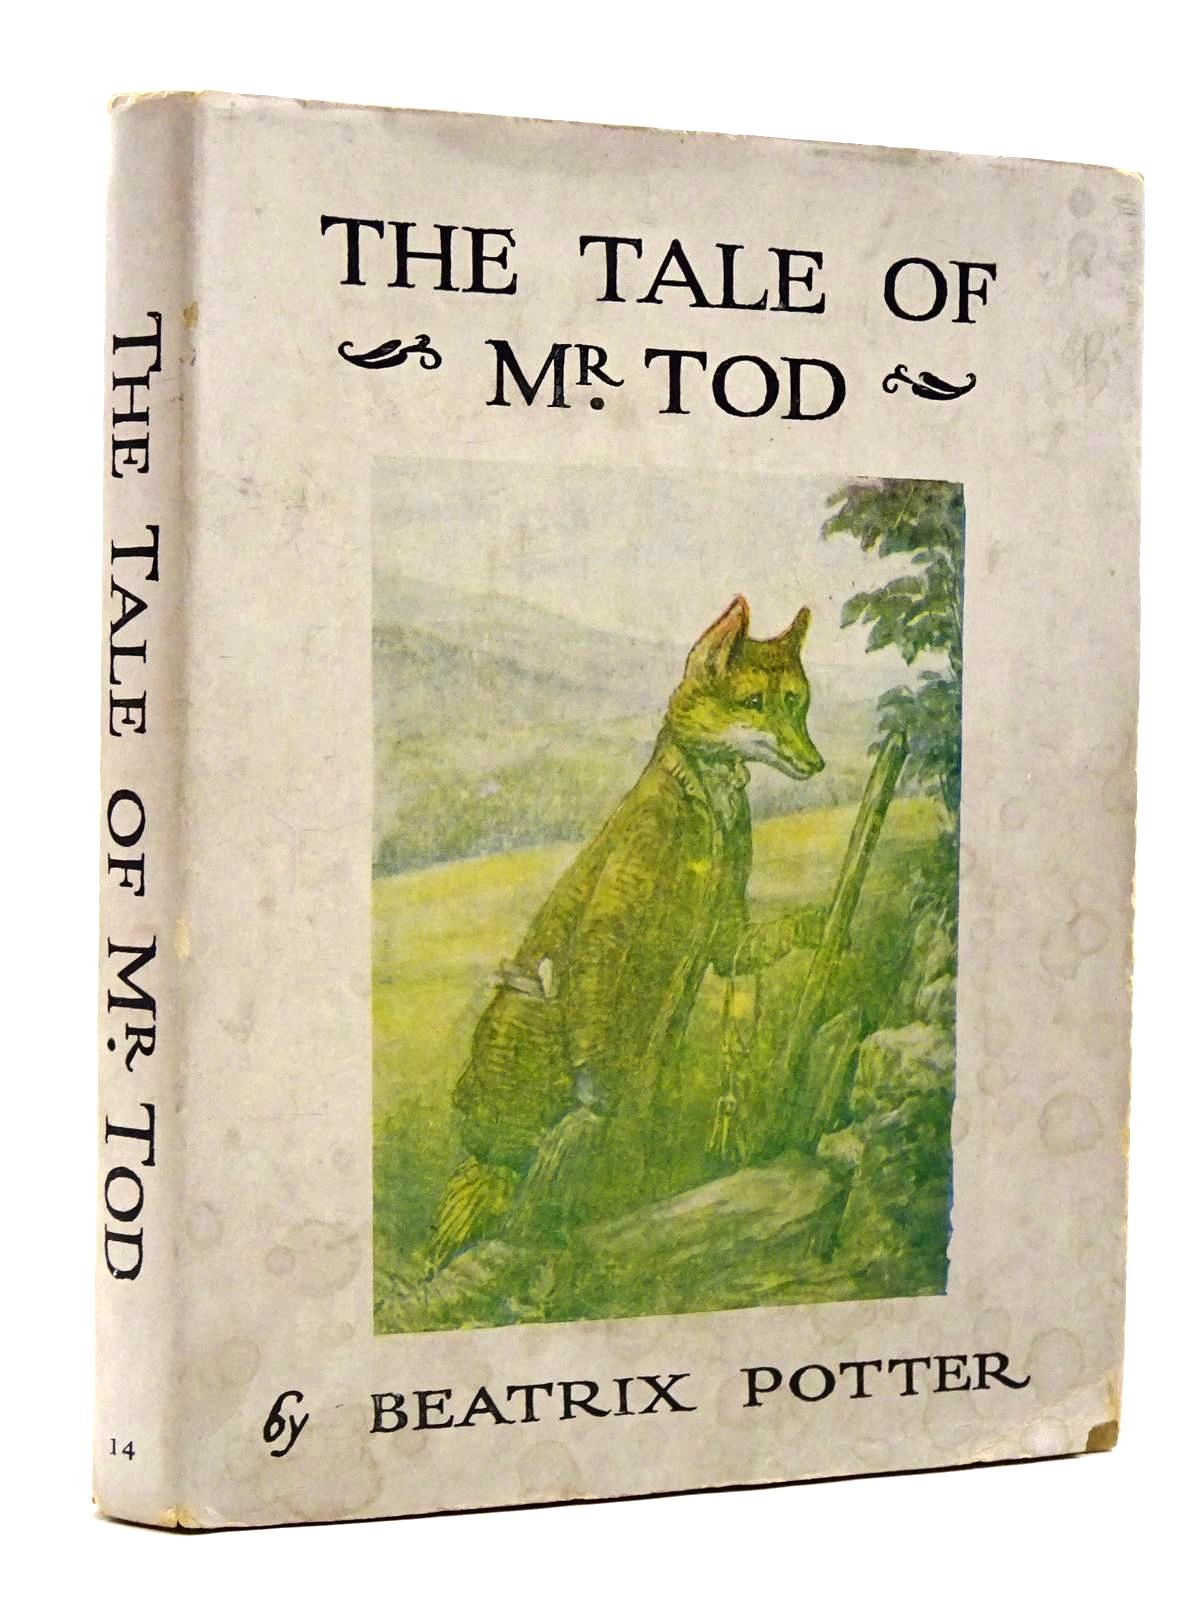 Photo of THE TALE OF MR. TOD written by Potter, Beatrix illustrated by Potter, Beatrix published by Frederick Warne & Co Ltd. (STOCK CODE: 2131314)  for sale by Stella & Rose's Books